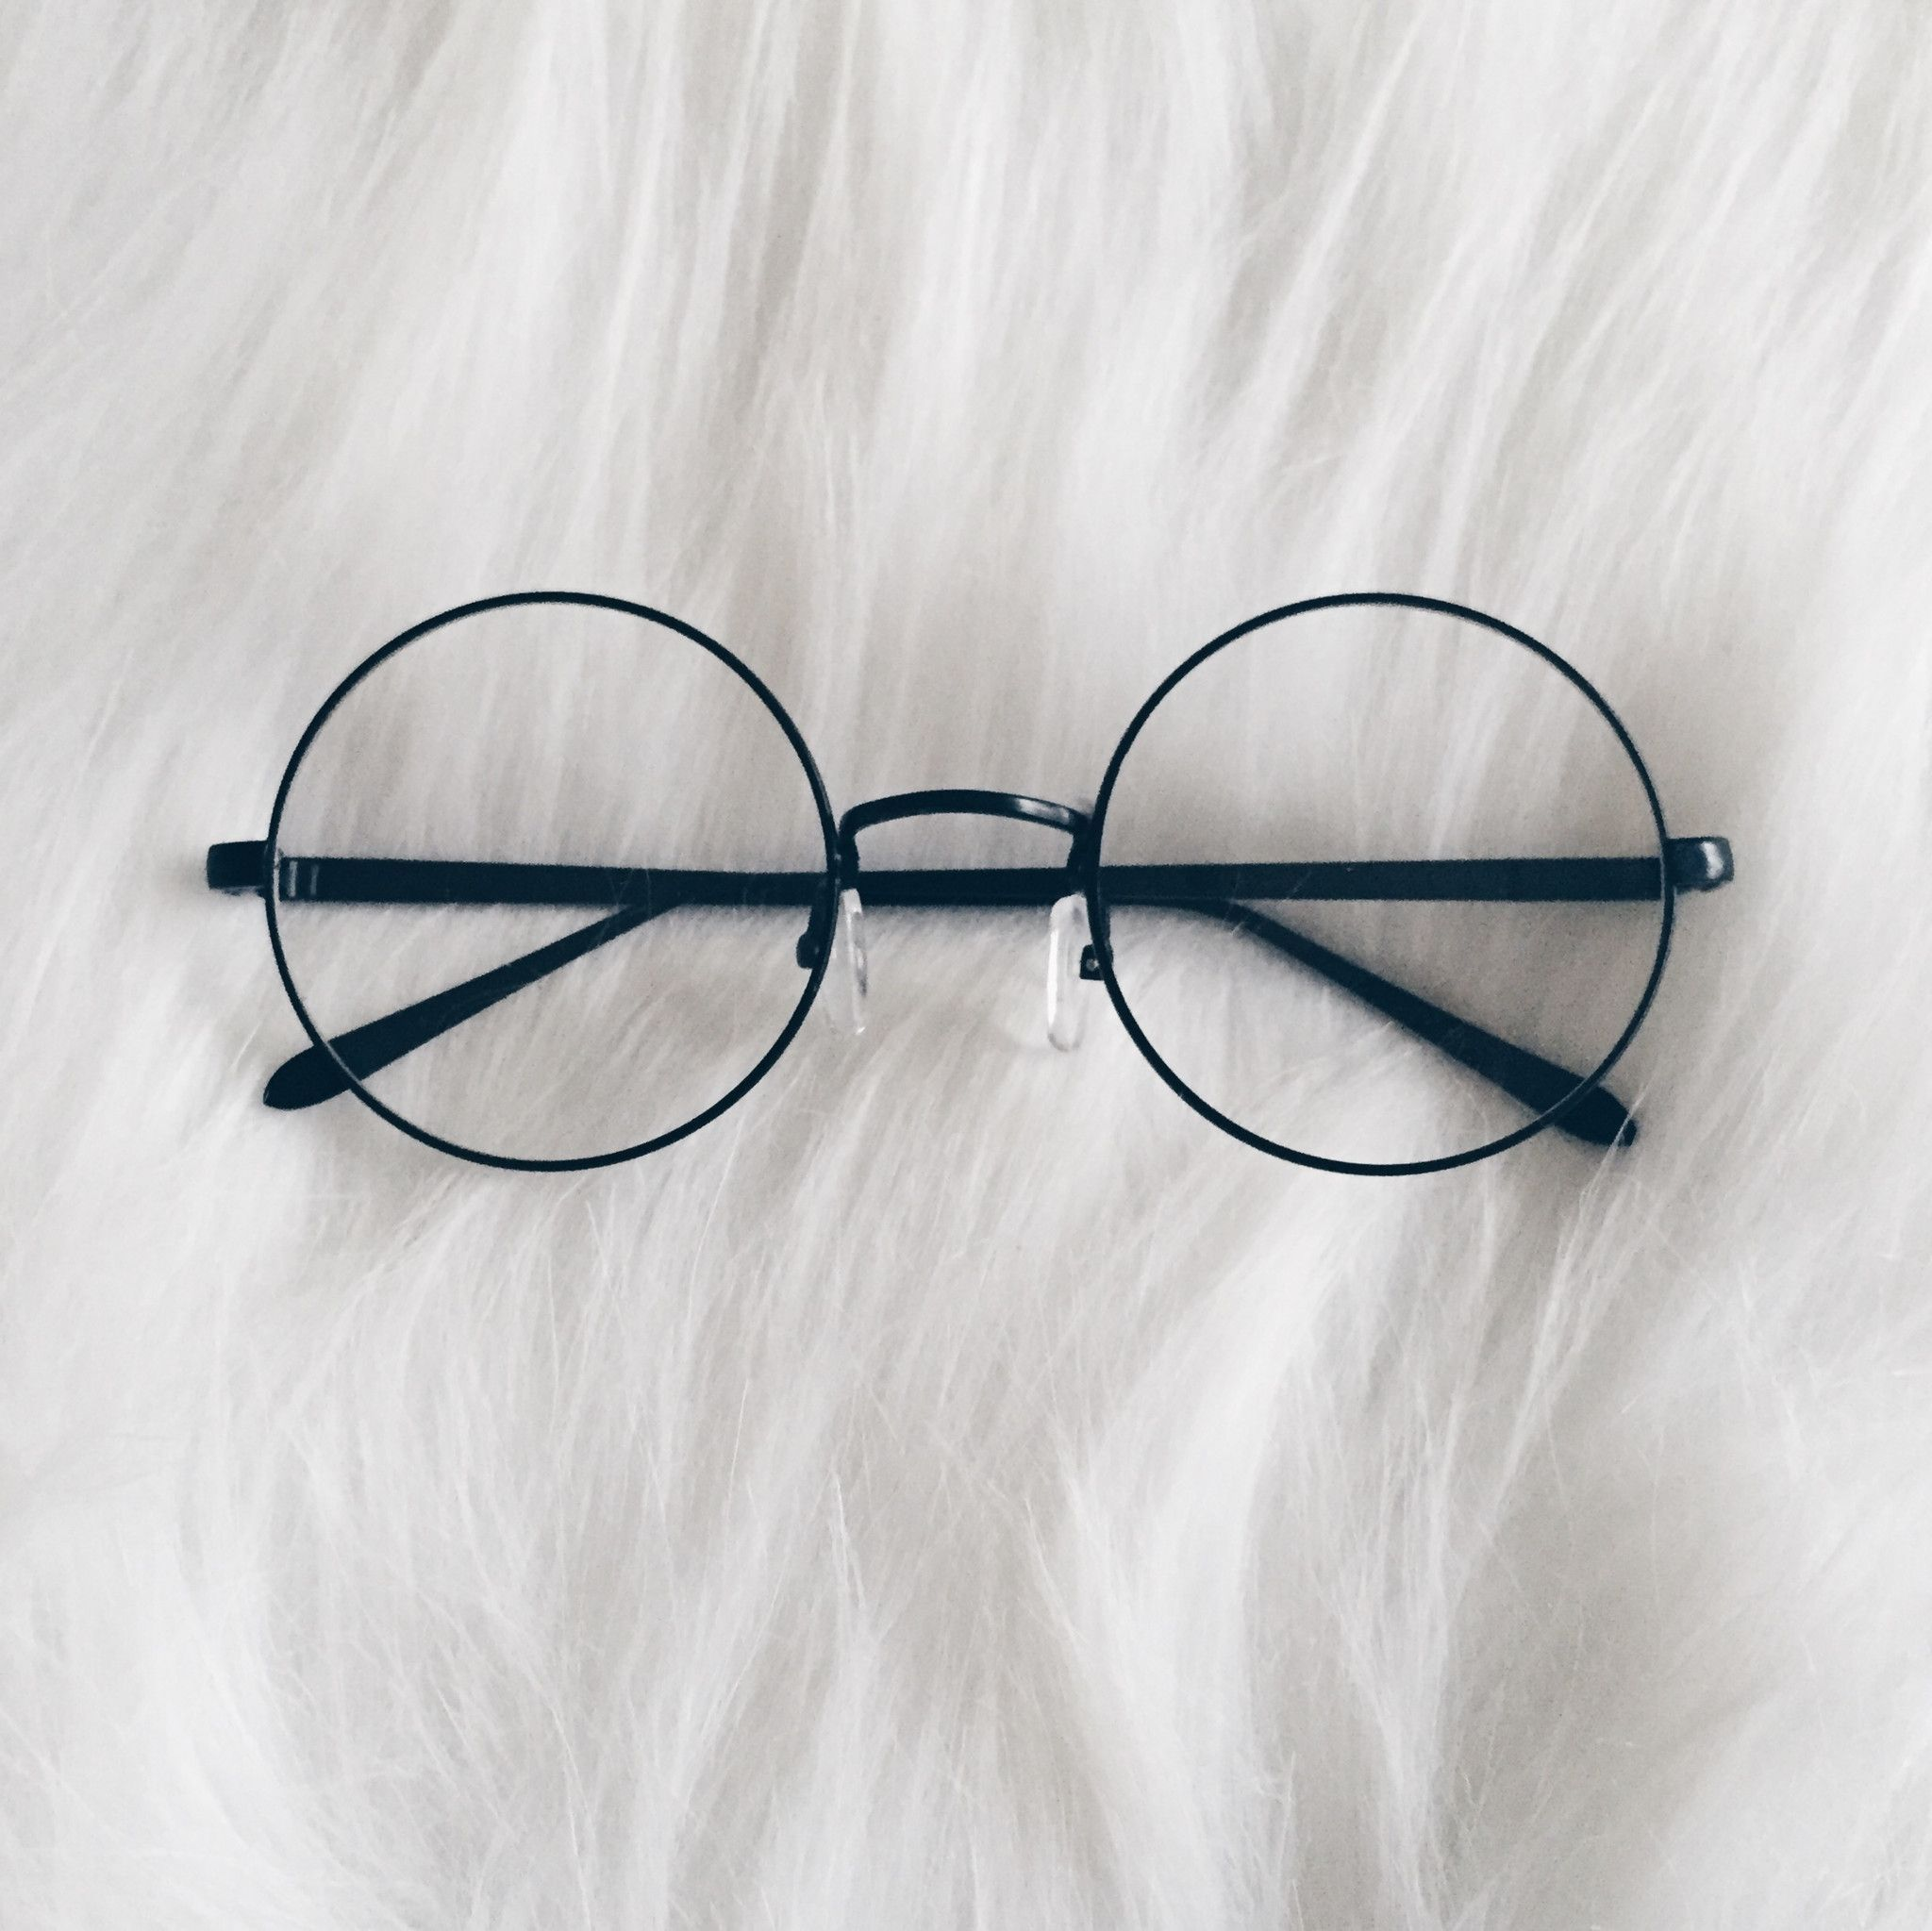 Harry Potter Glasses More f6d92312d8